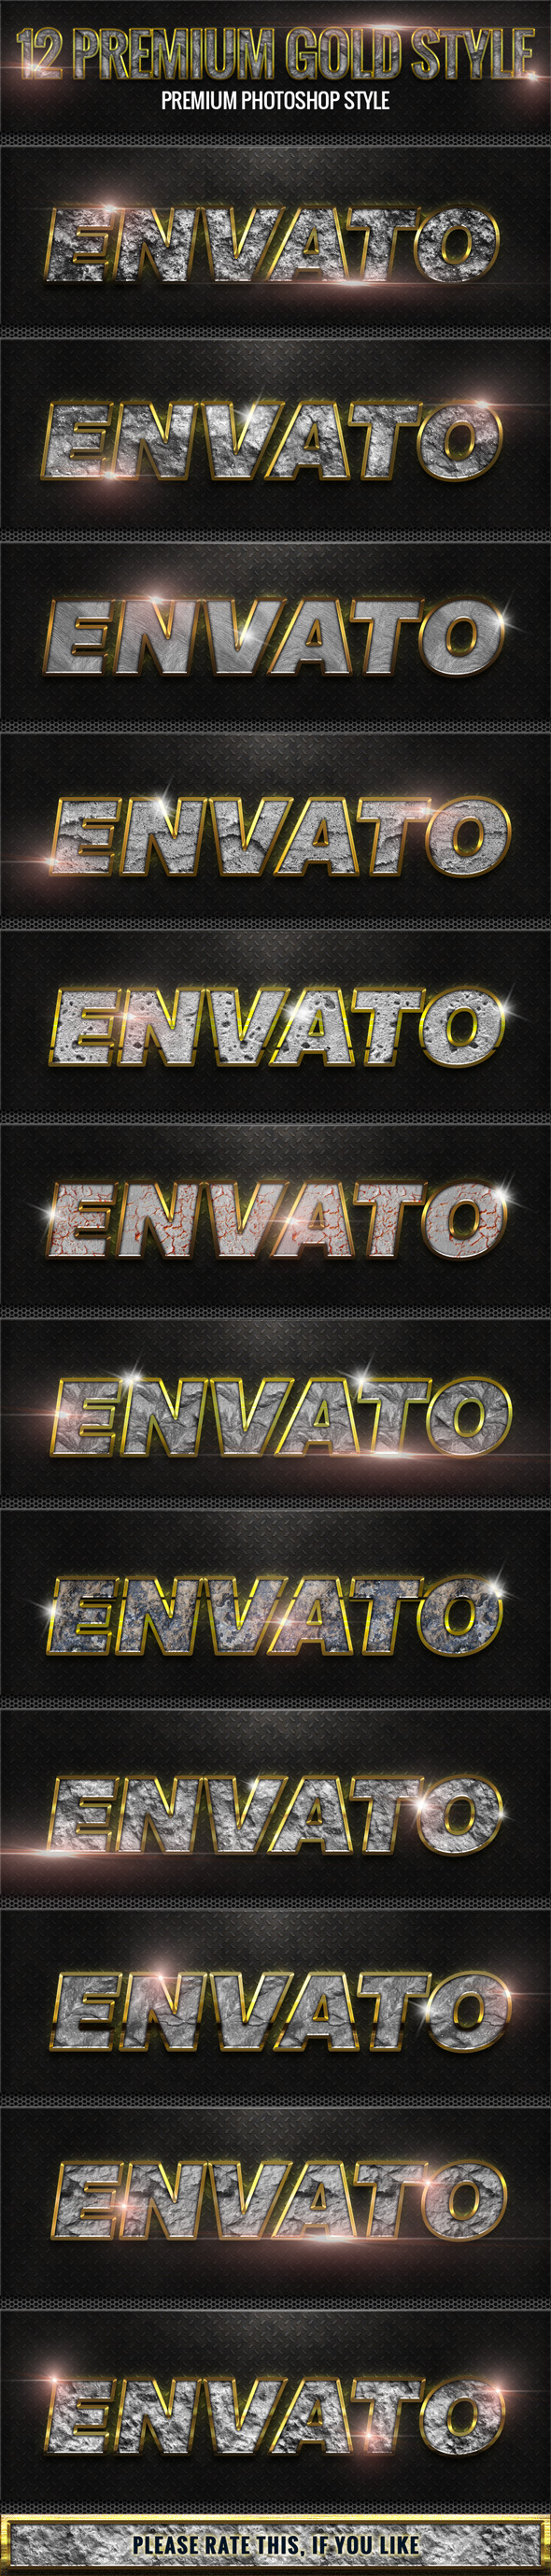 GraphicRiver 12 New Rock With Gold Style 10232022